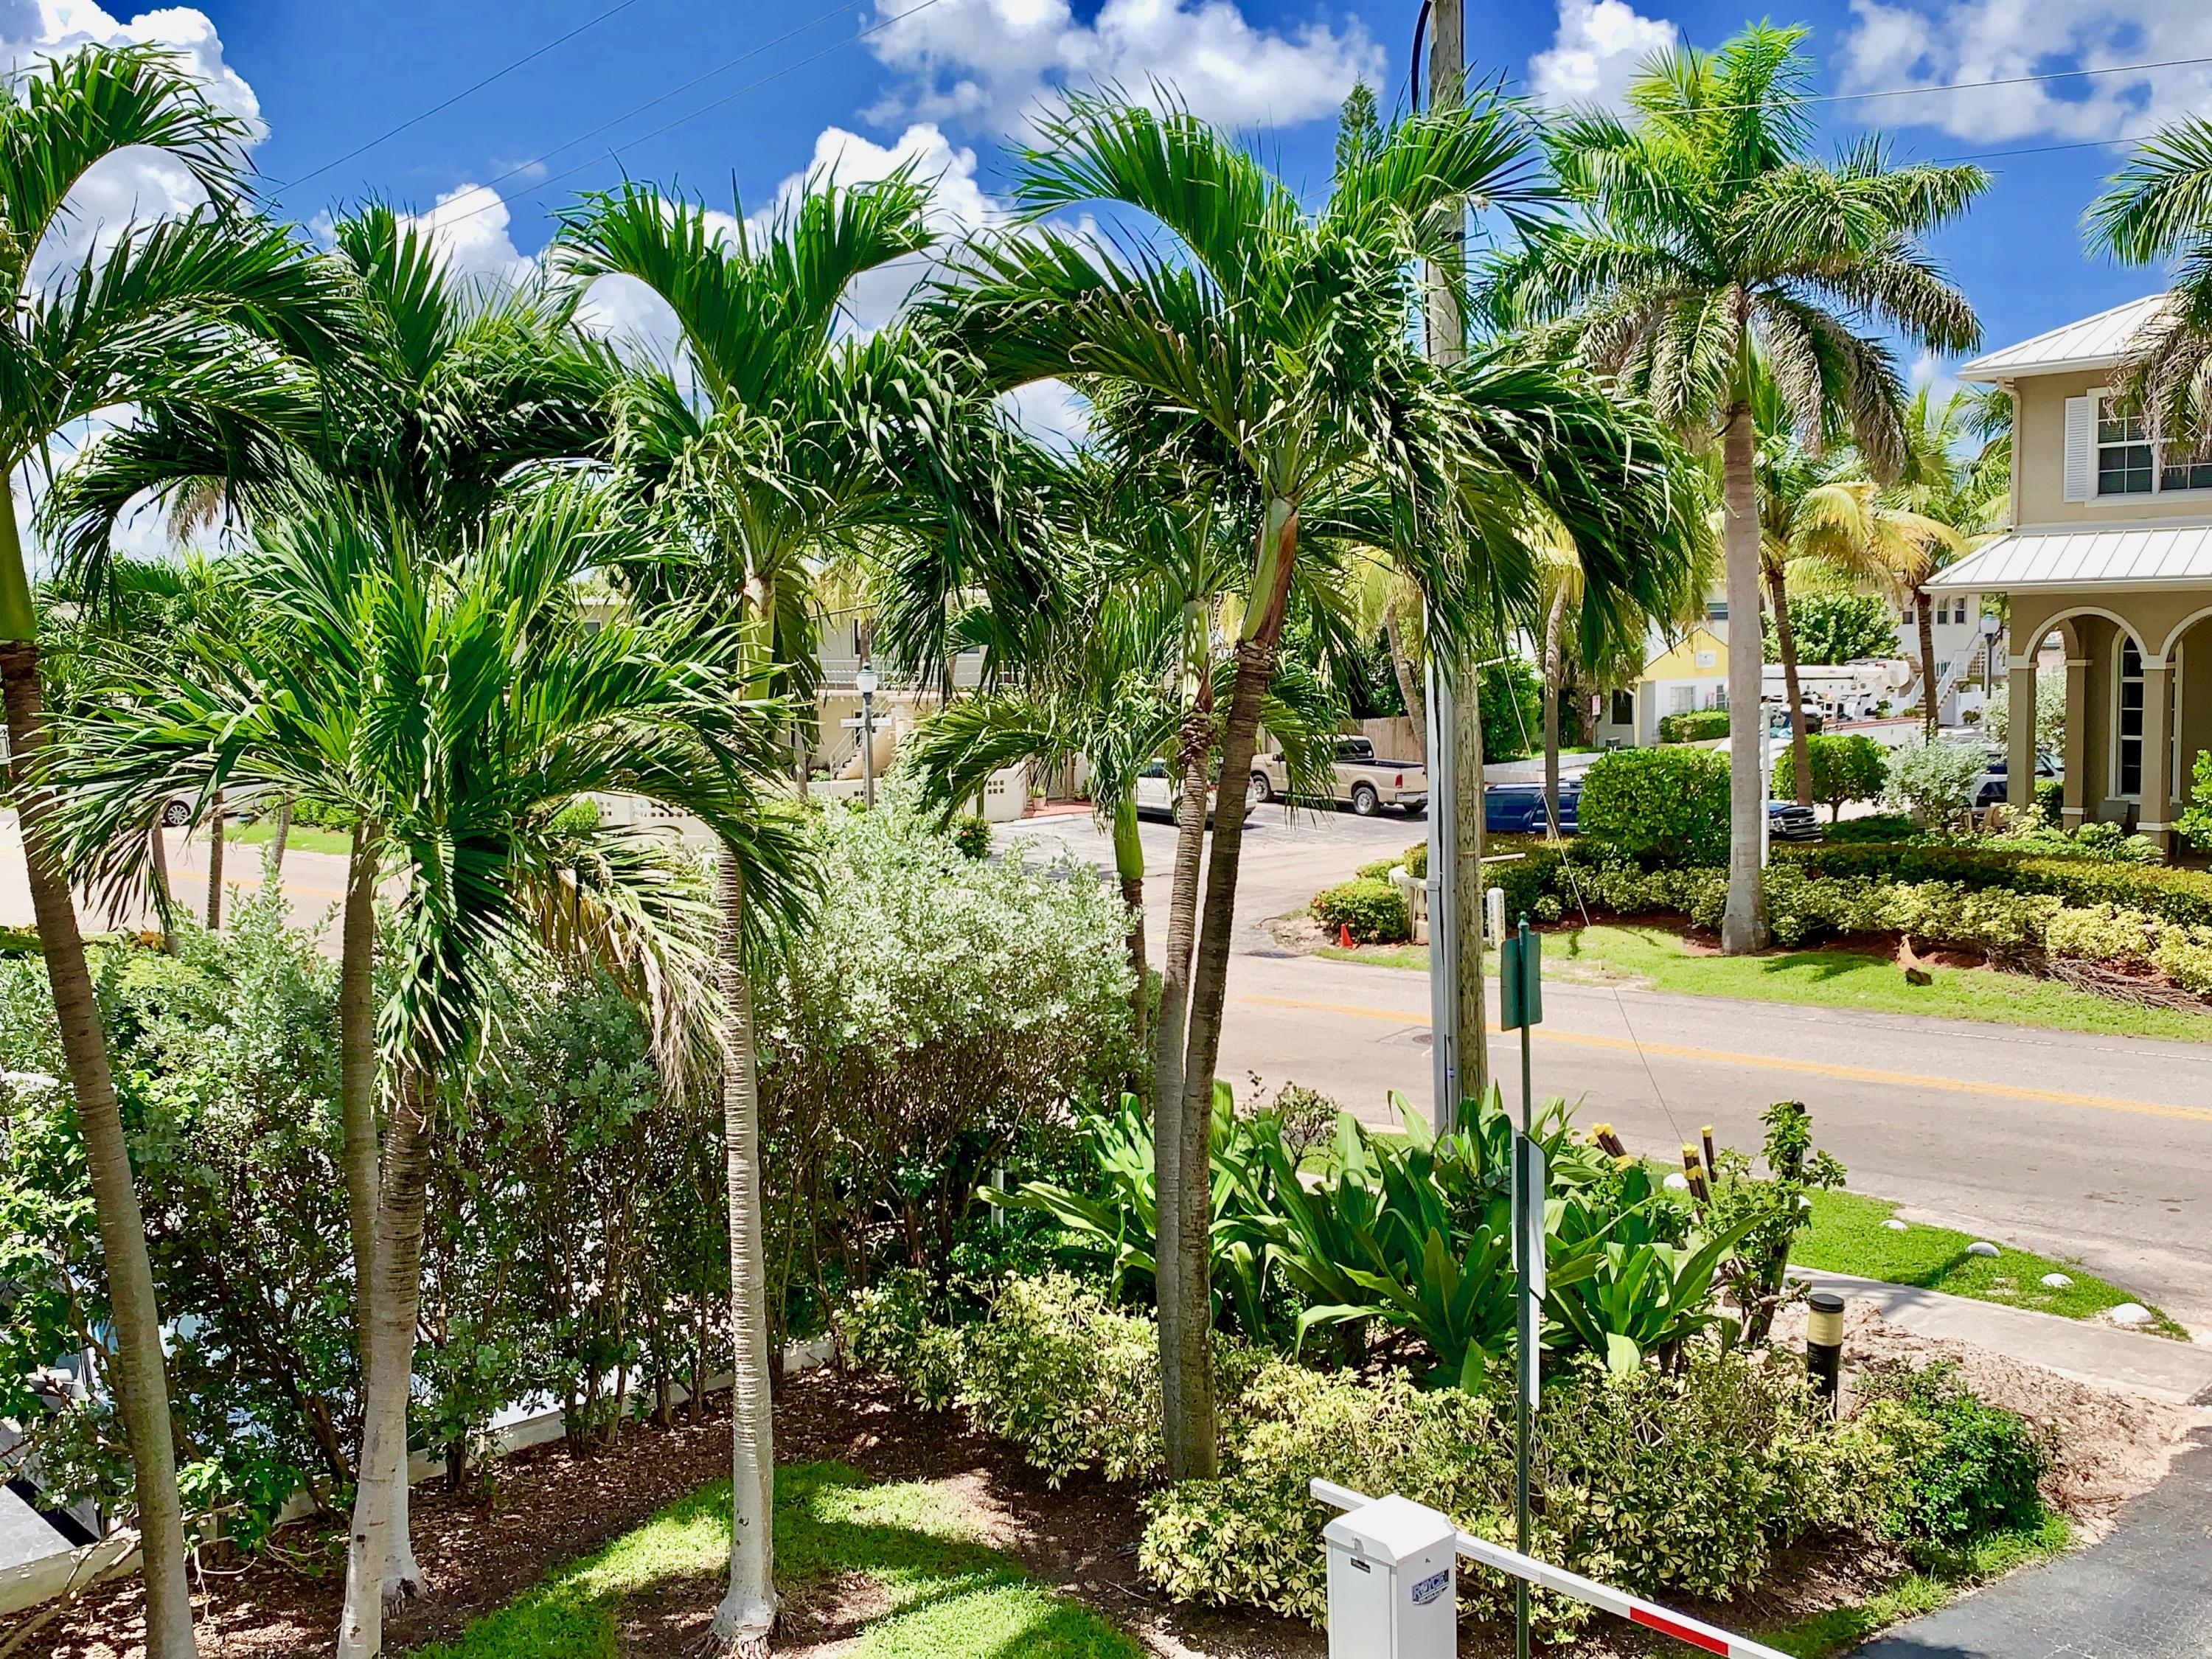 PALM TREED VIEWS OF TOWN